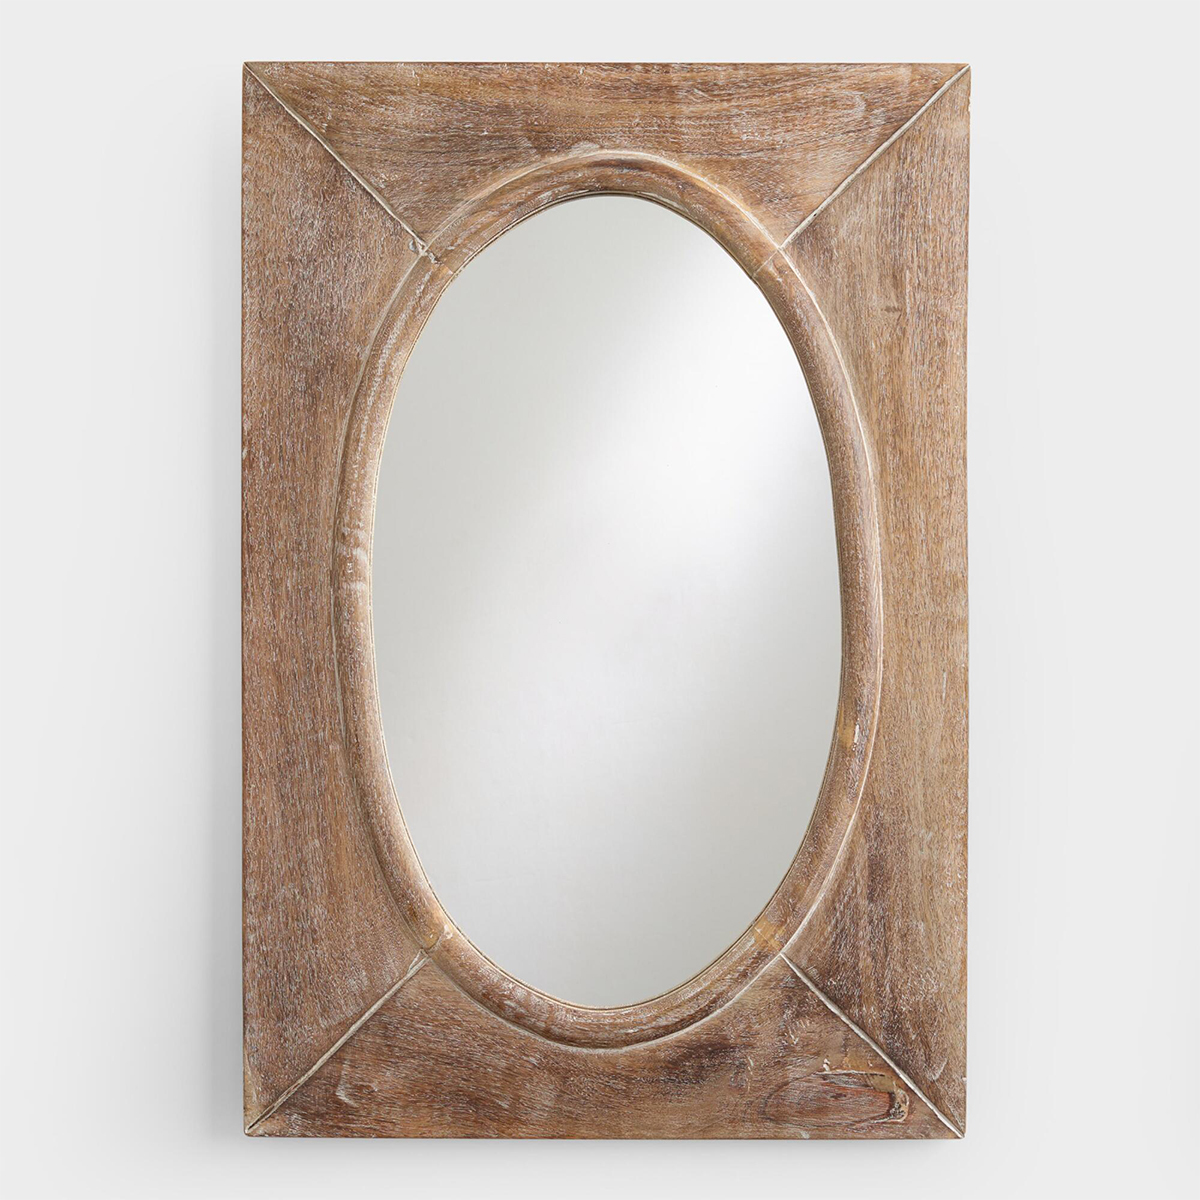 Oval mirror made with distressed wood photo